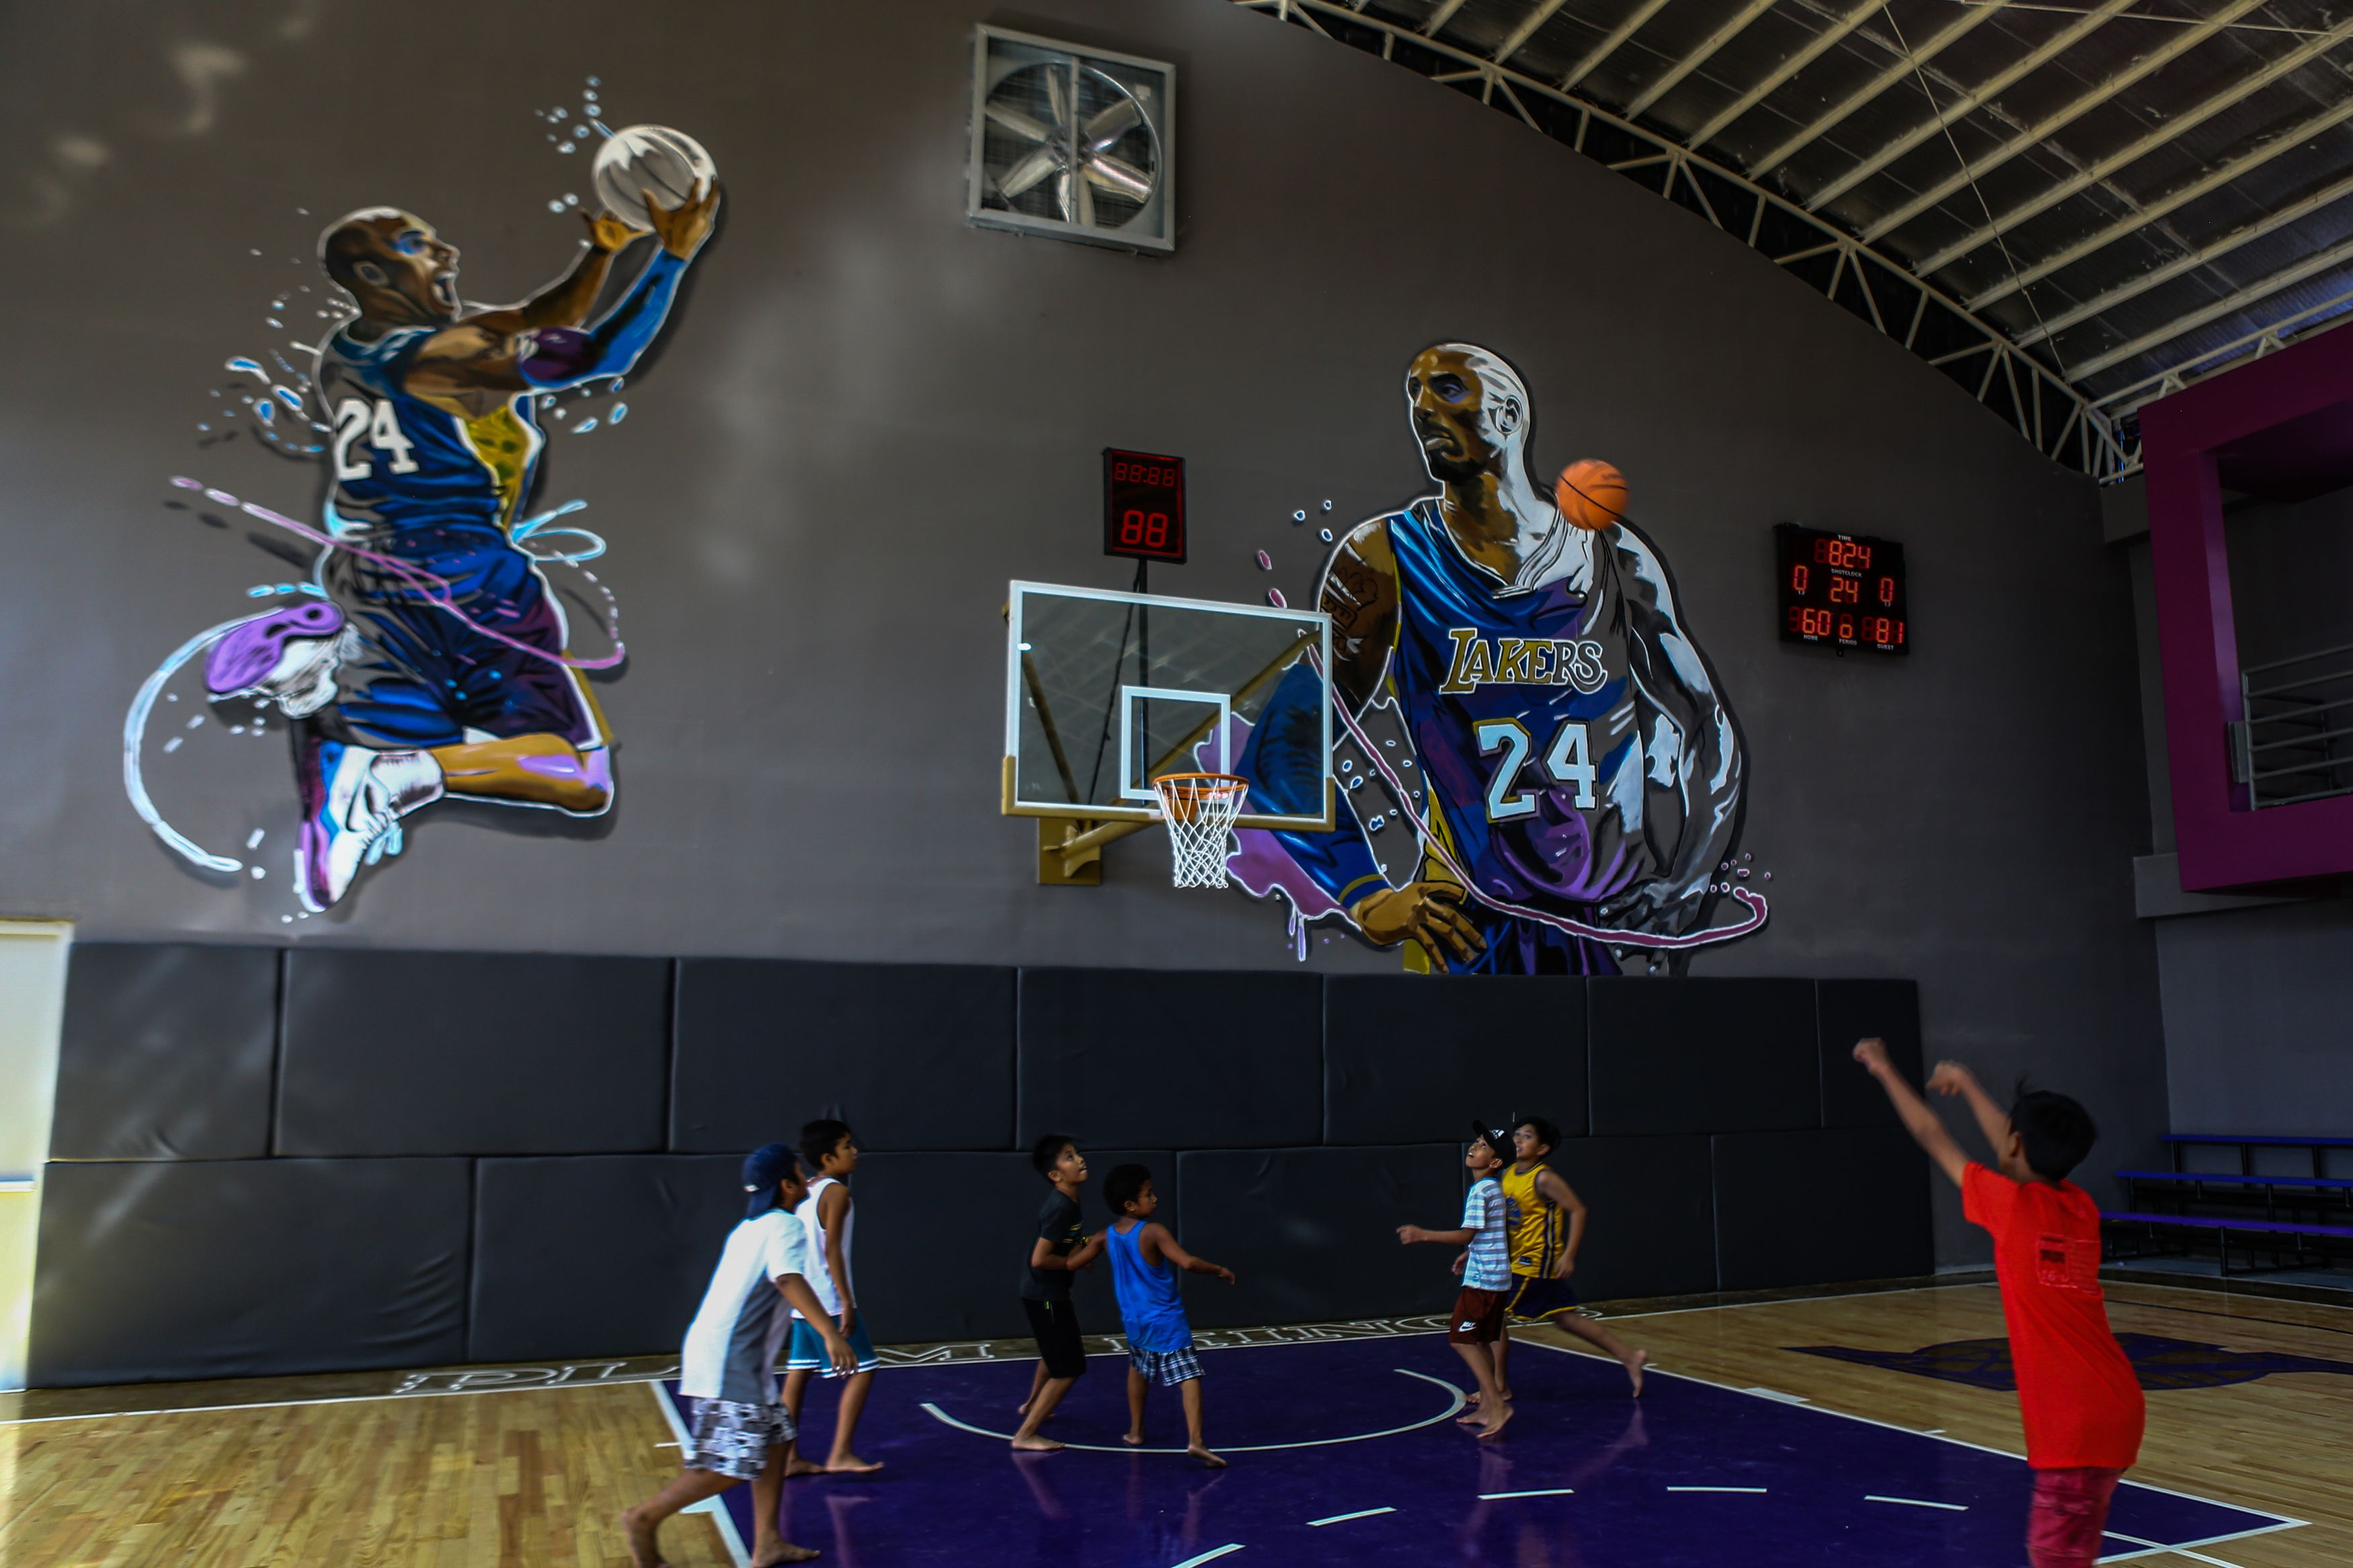 """Children play basketball at the """"House of Kobe"""" gym, built in honor of Bryant."""